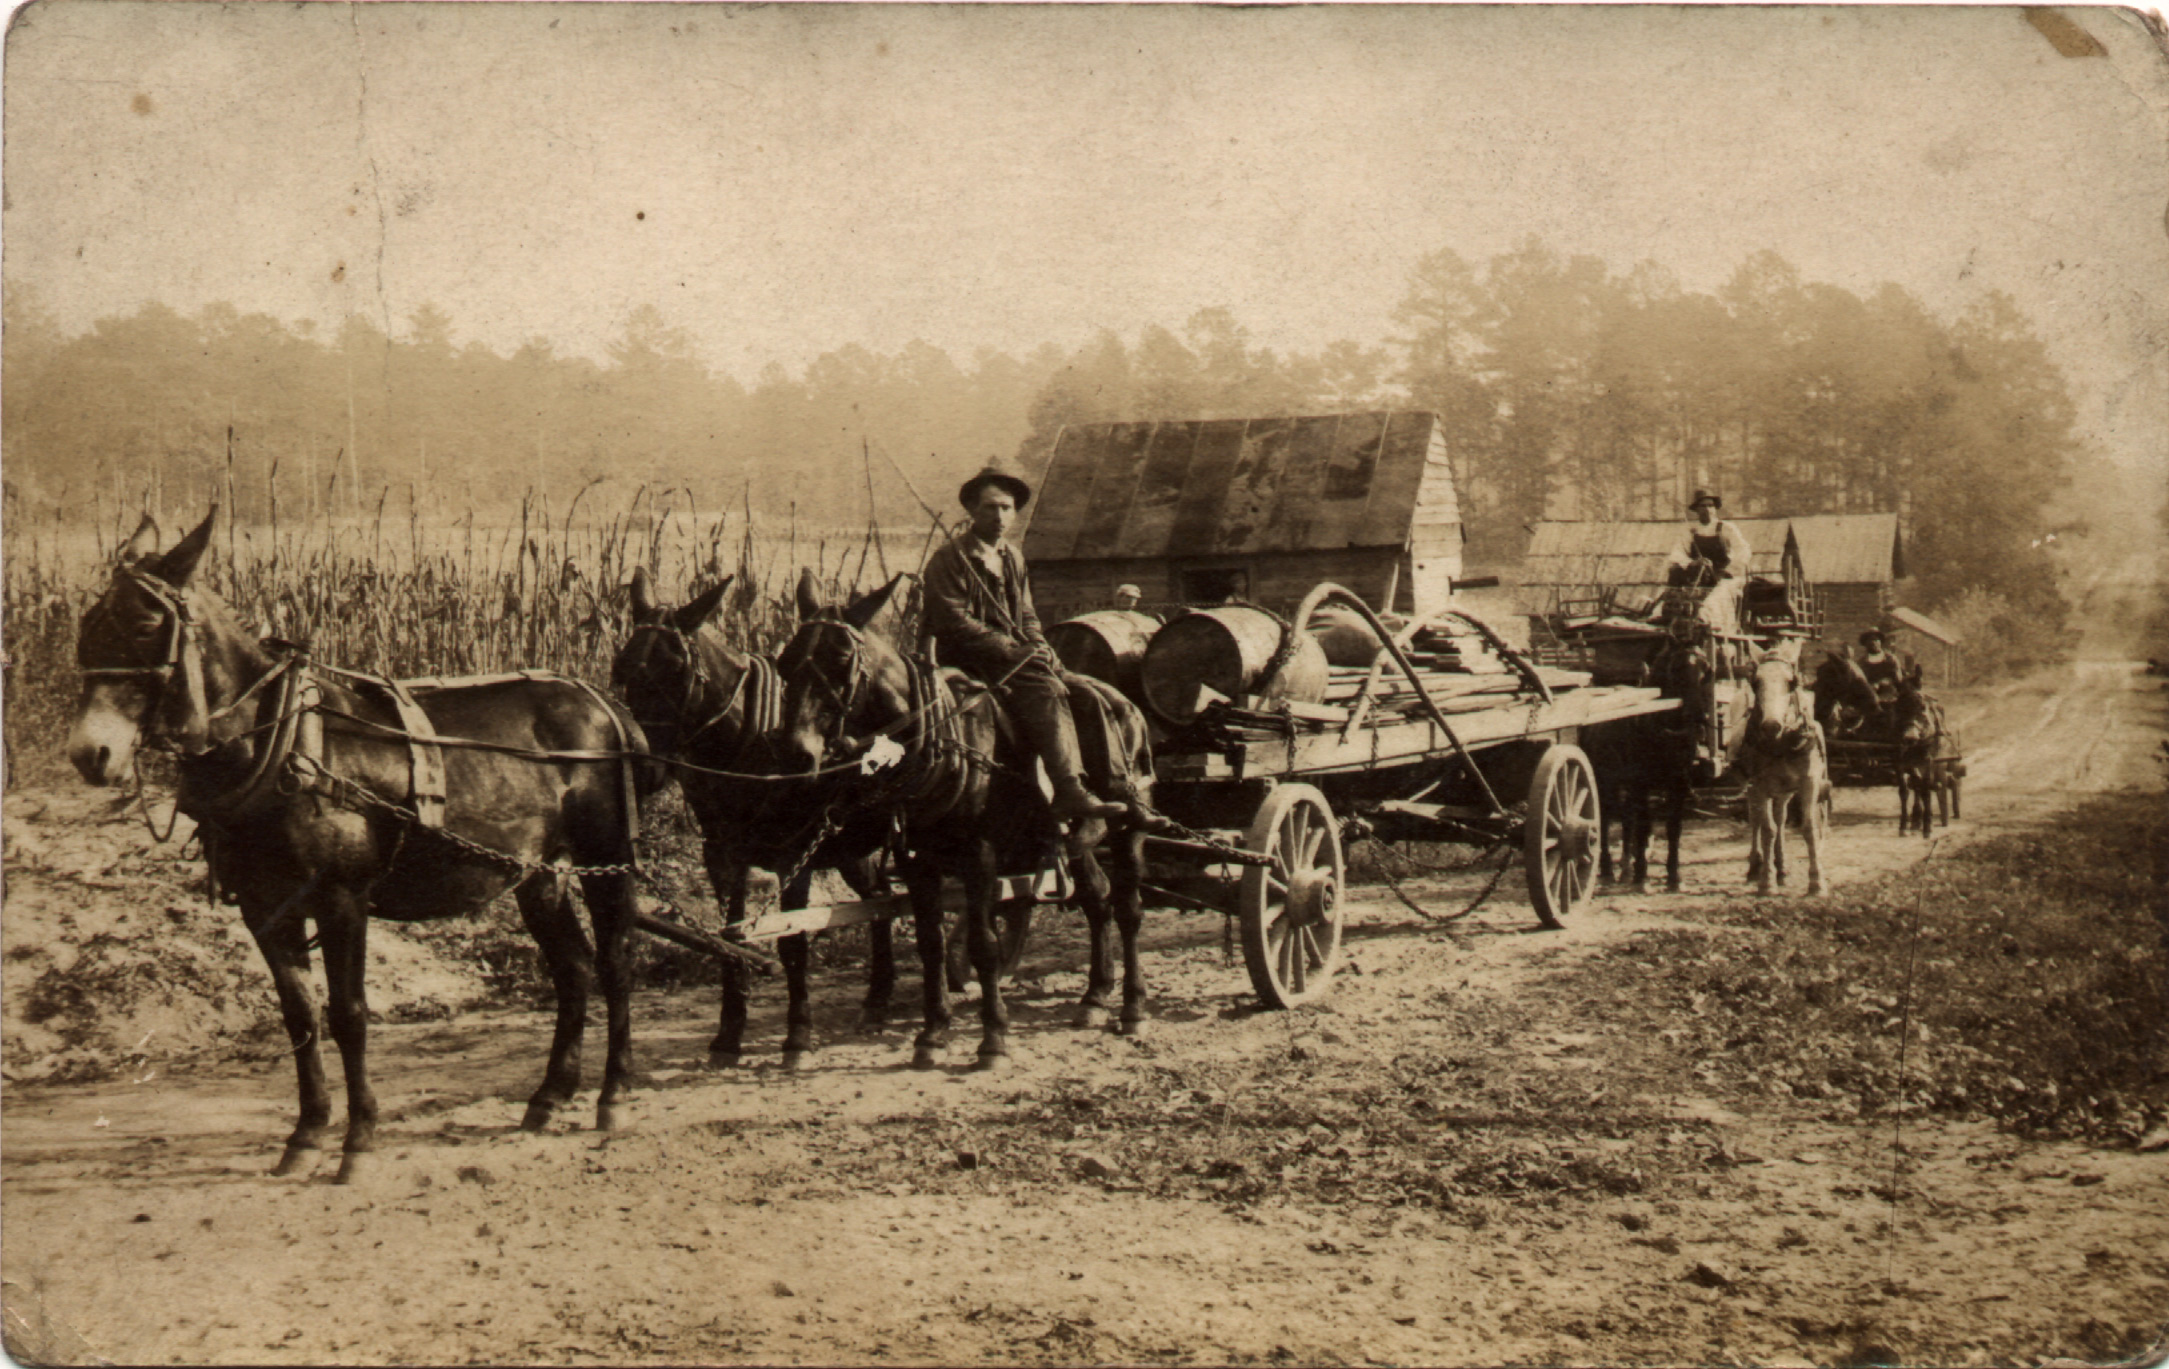 http://jrandomimage.com/images/mule-wagons.jpg